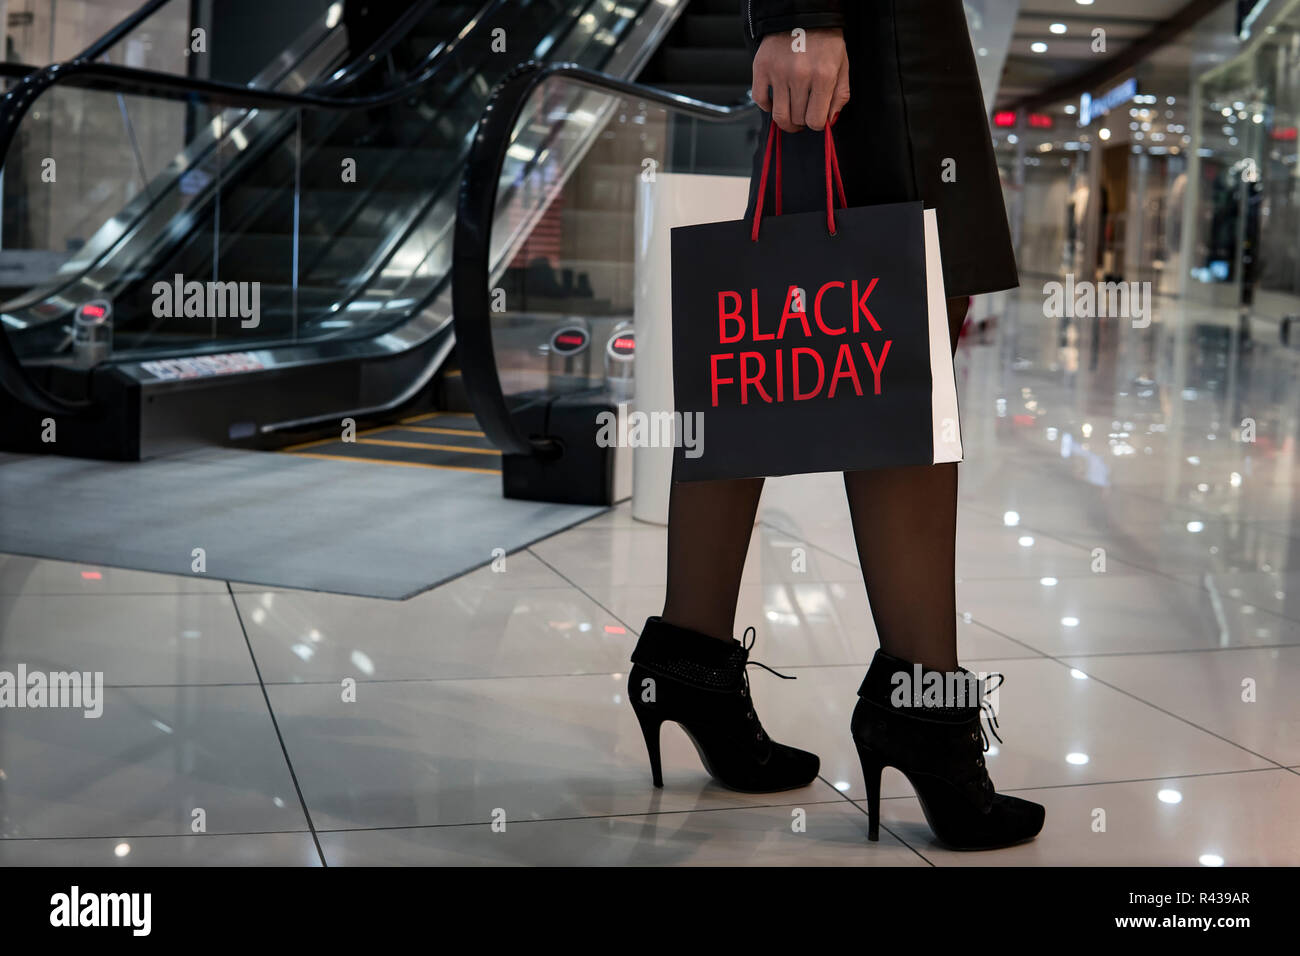 season of autumn sales on black Friday. Girl carrying a shopping bag at Mall. Stylish slim ladies walking shopping bags in the store during shopping process, concept of consumerism, sale, rich life - Stock Image